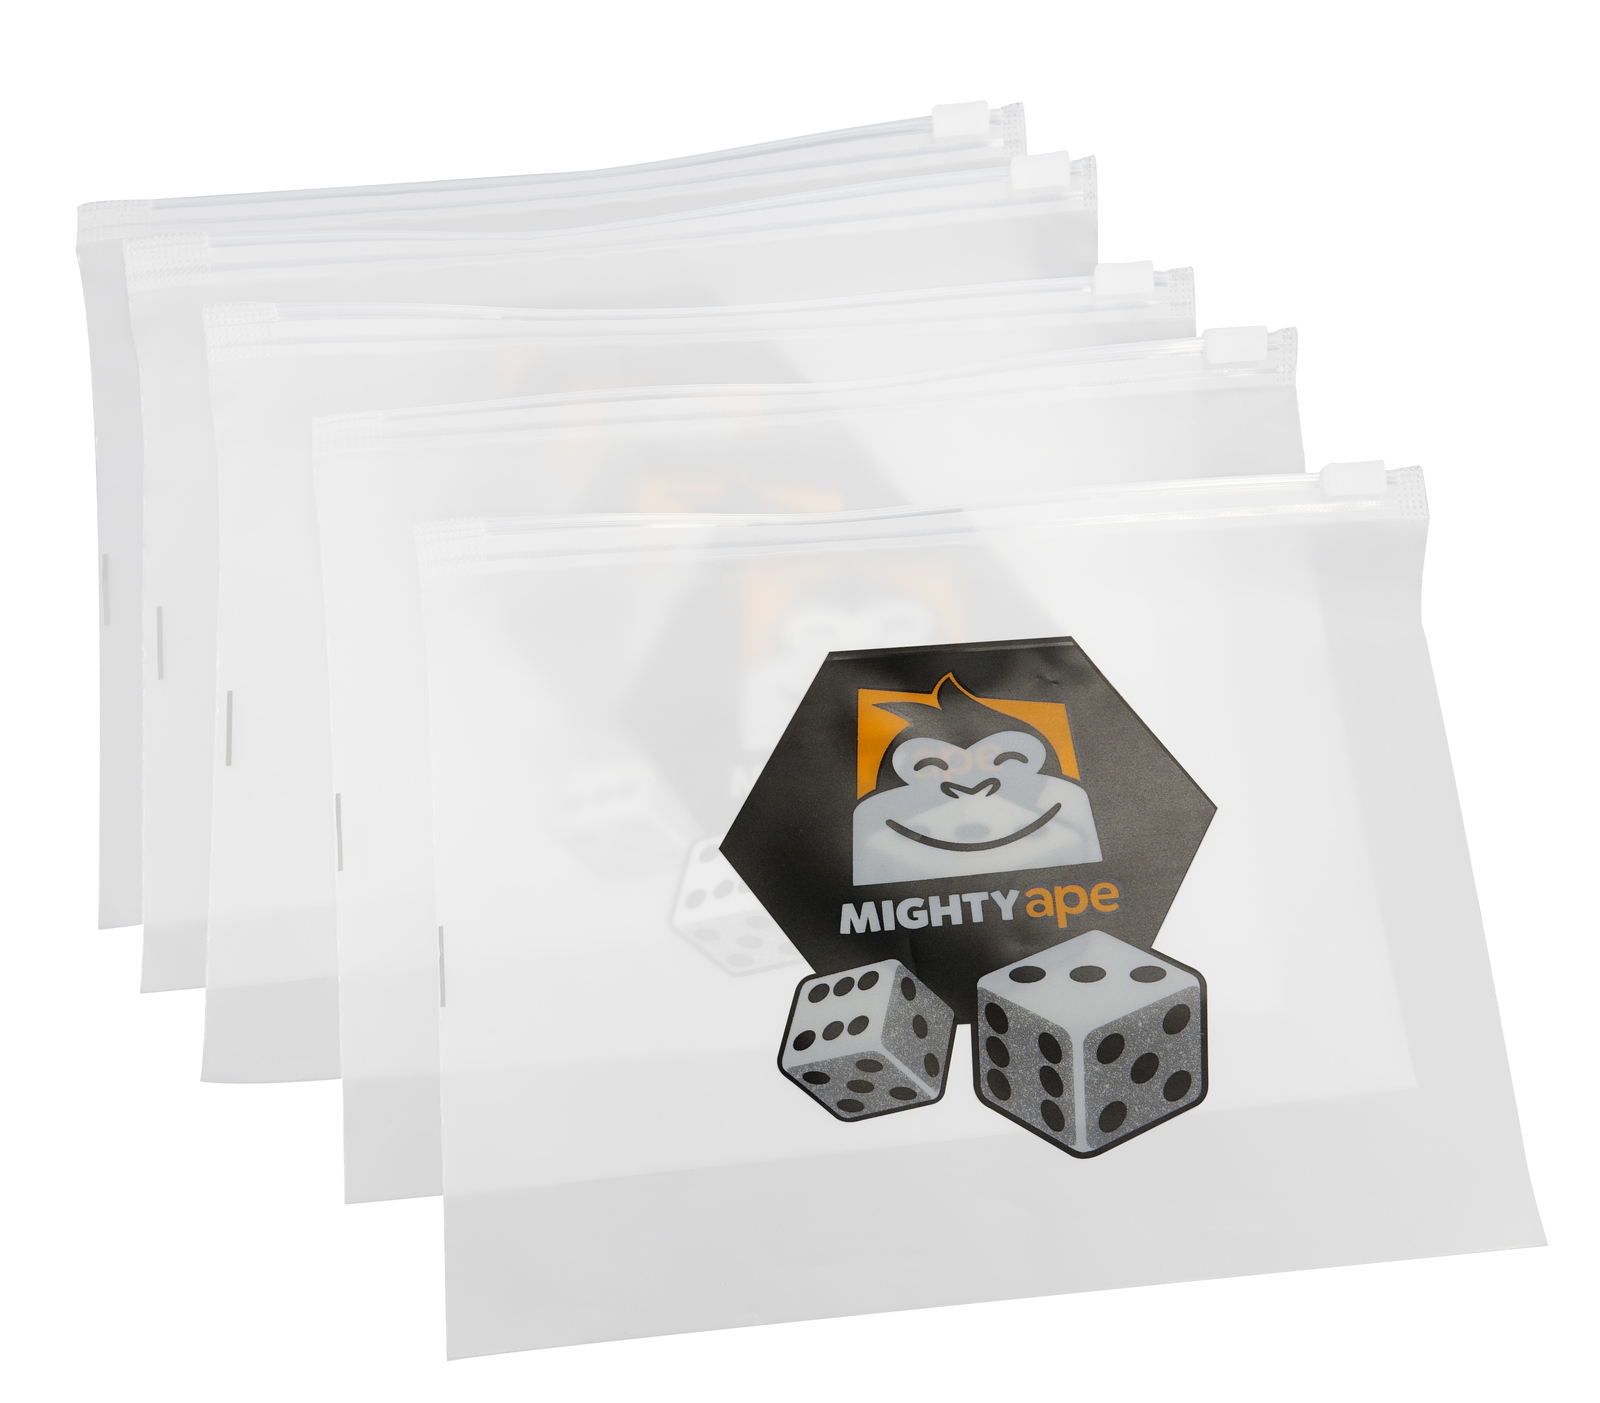 Mighty Ape Board Game Component Bags: 10 Pack - Large image